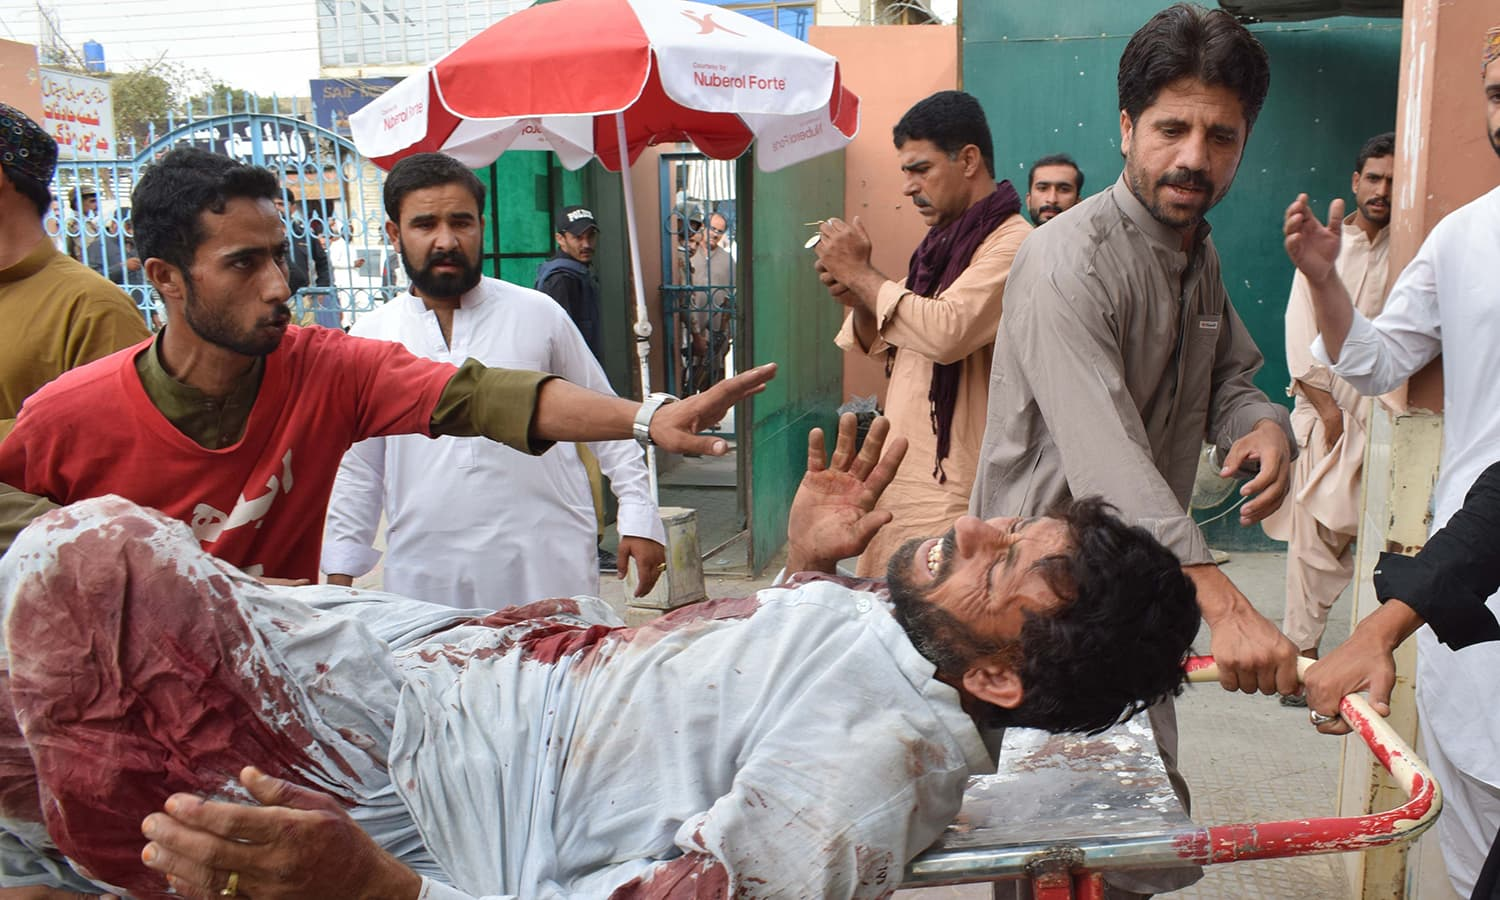 A man is brought to a hospital in Quetta  following the bomb blast at an election rally in Mastung. —AFP